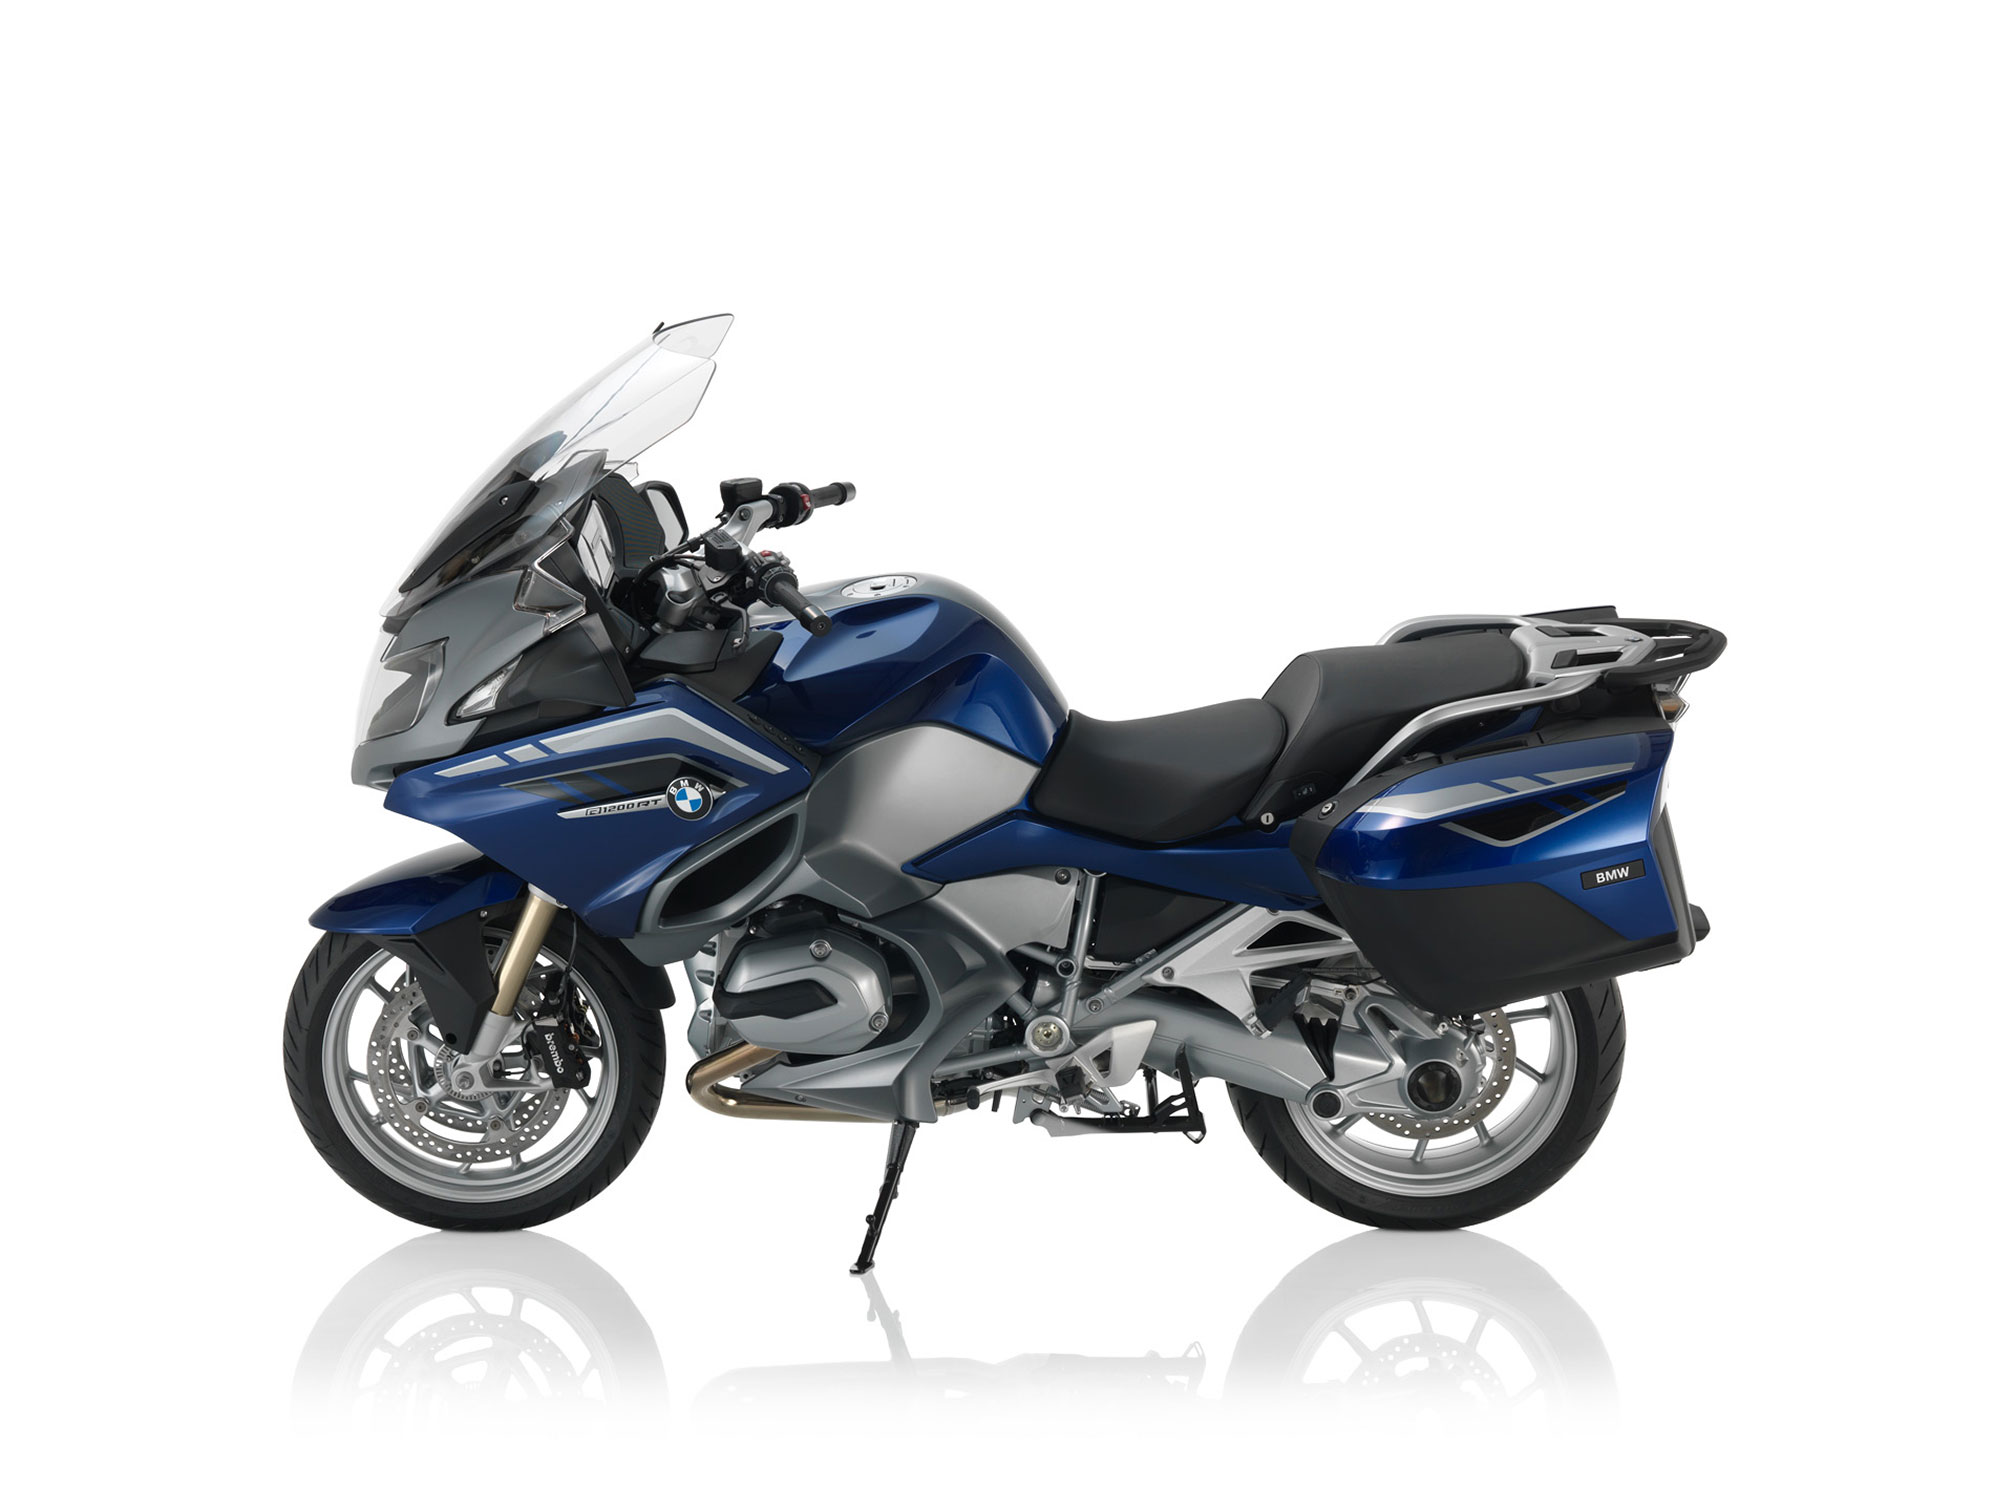 bmw r 1200 rt specs 2014 2015 autoevolution. Black Bedroom Furniture Sets. Home Design Ideas